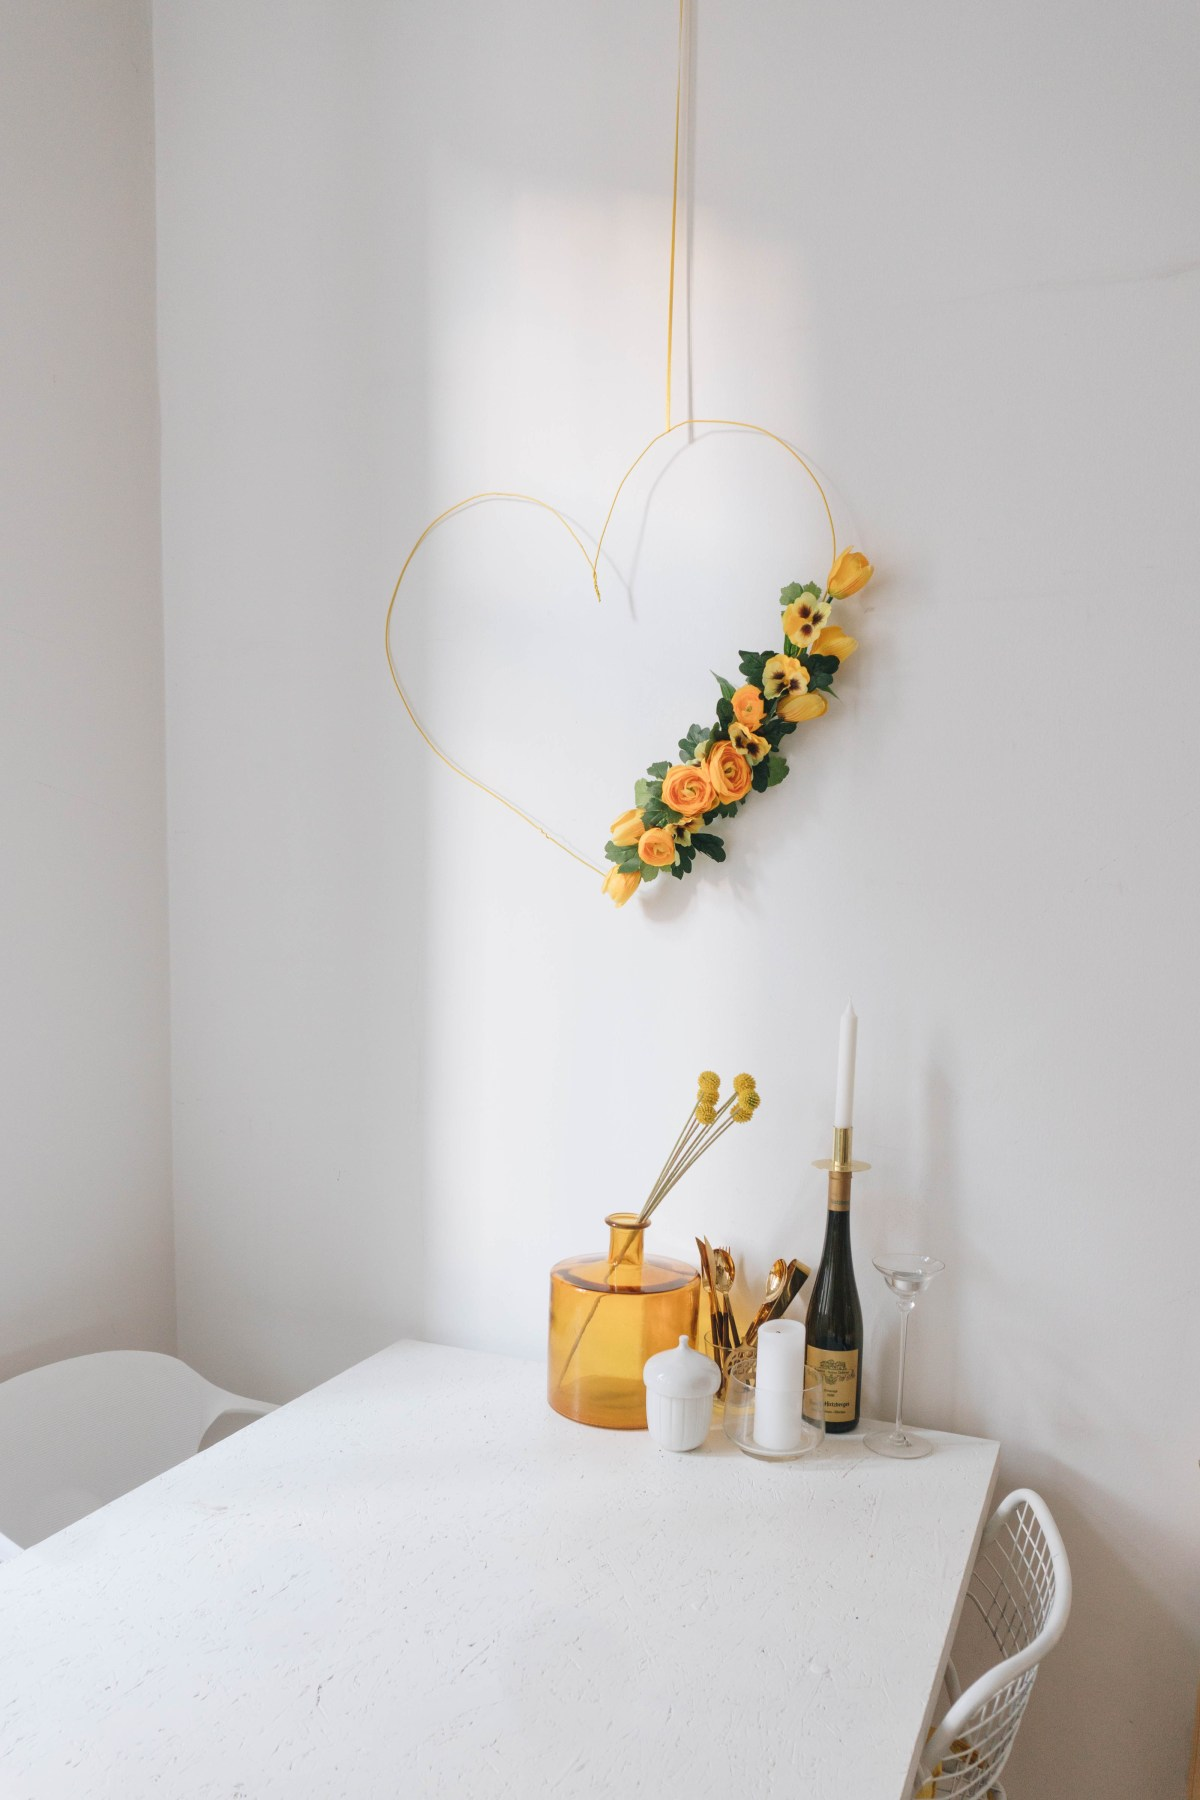 https://i1.wp.com/yellowgirl.at/wp-content/uploads/2019/01/yellowgirl_großer-minimalistischer-DIY-Valentinstag-Herzkranz-mit-Stoffblumen-15-von-21.jpg?fit=1200%2C1800&ssl=1